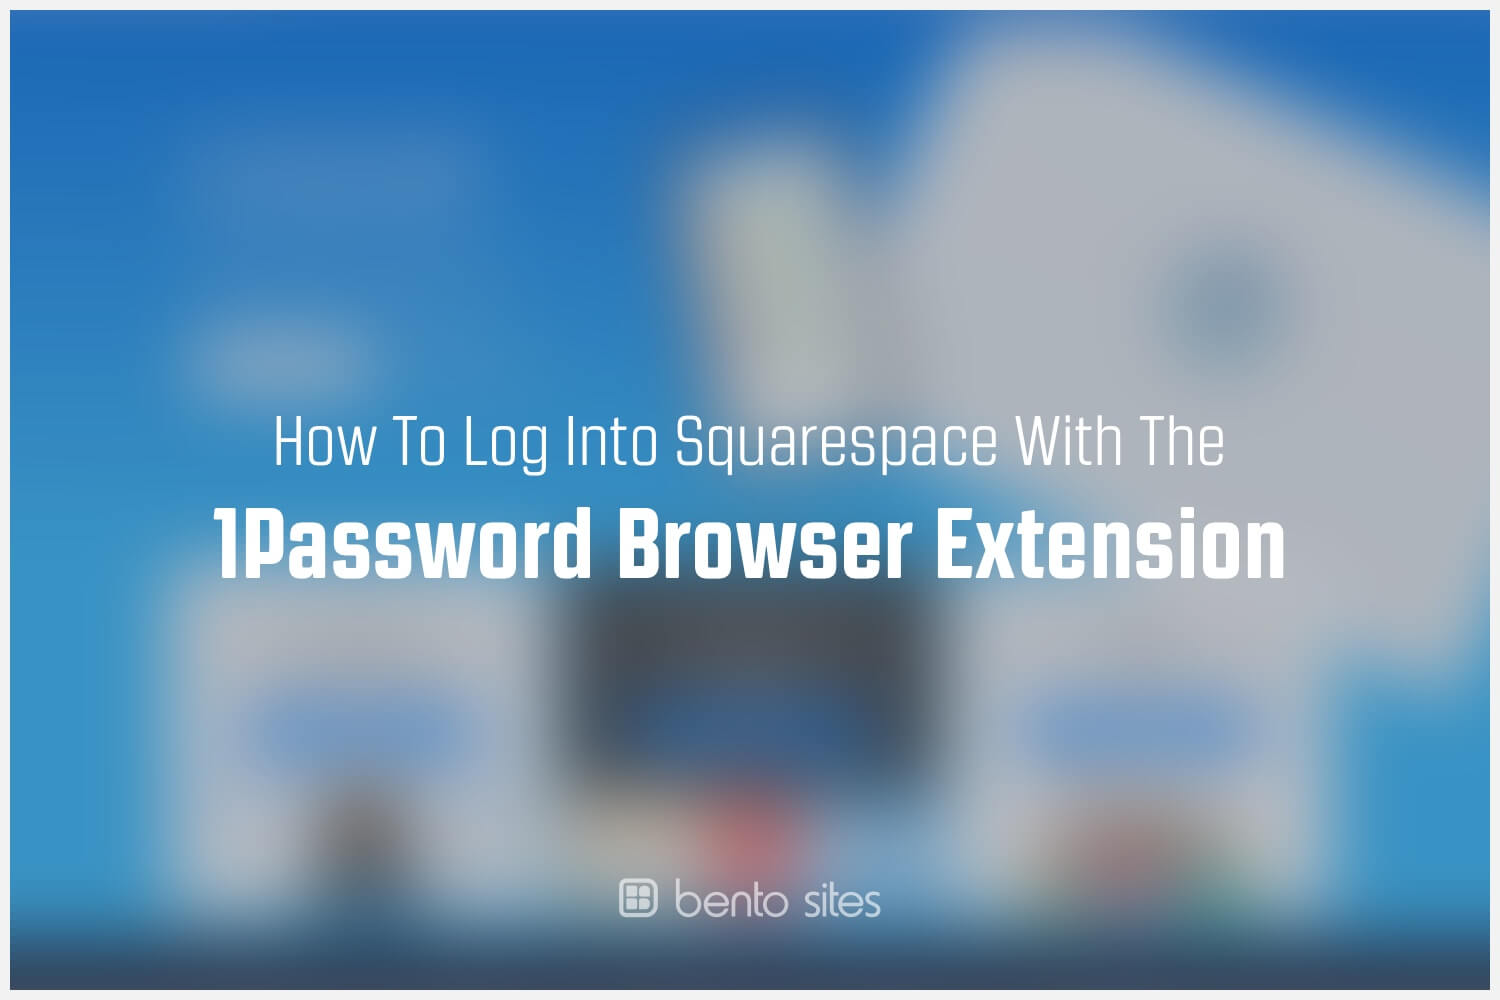 squarespace-and-1password-browser-extension